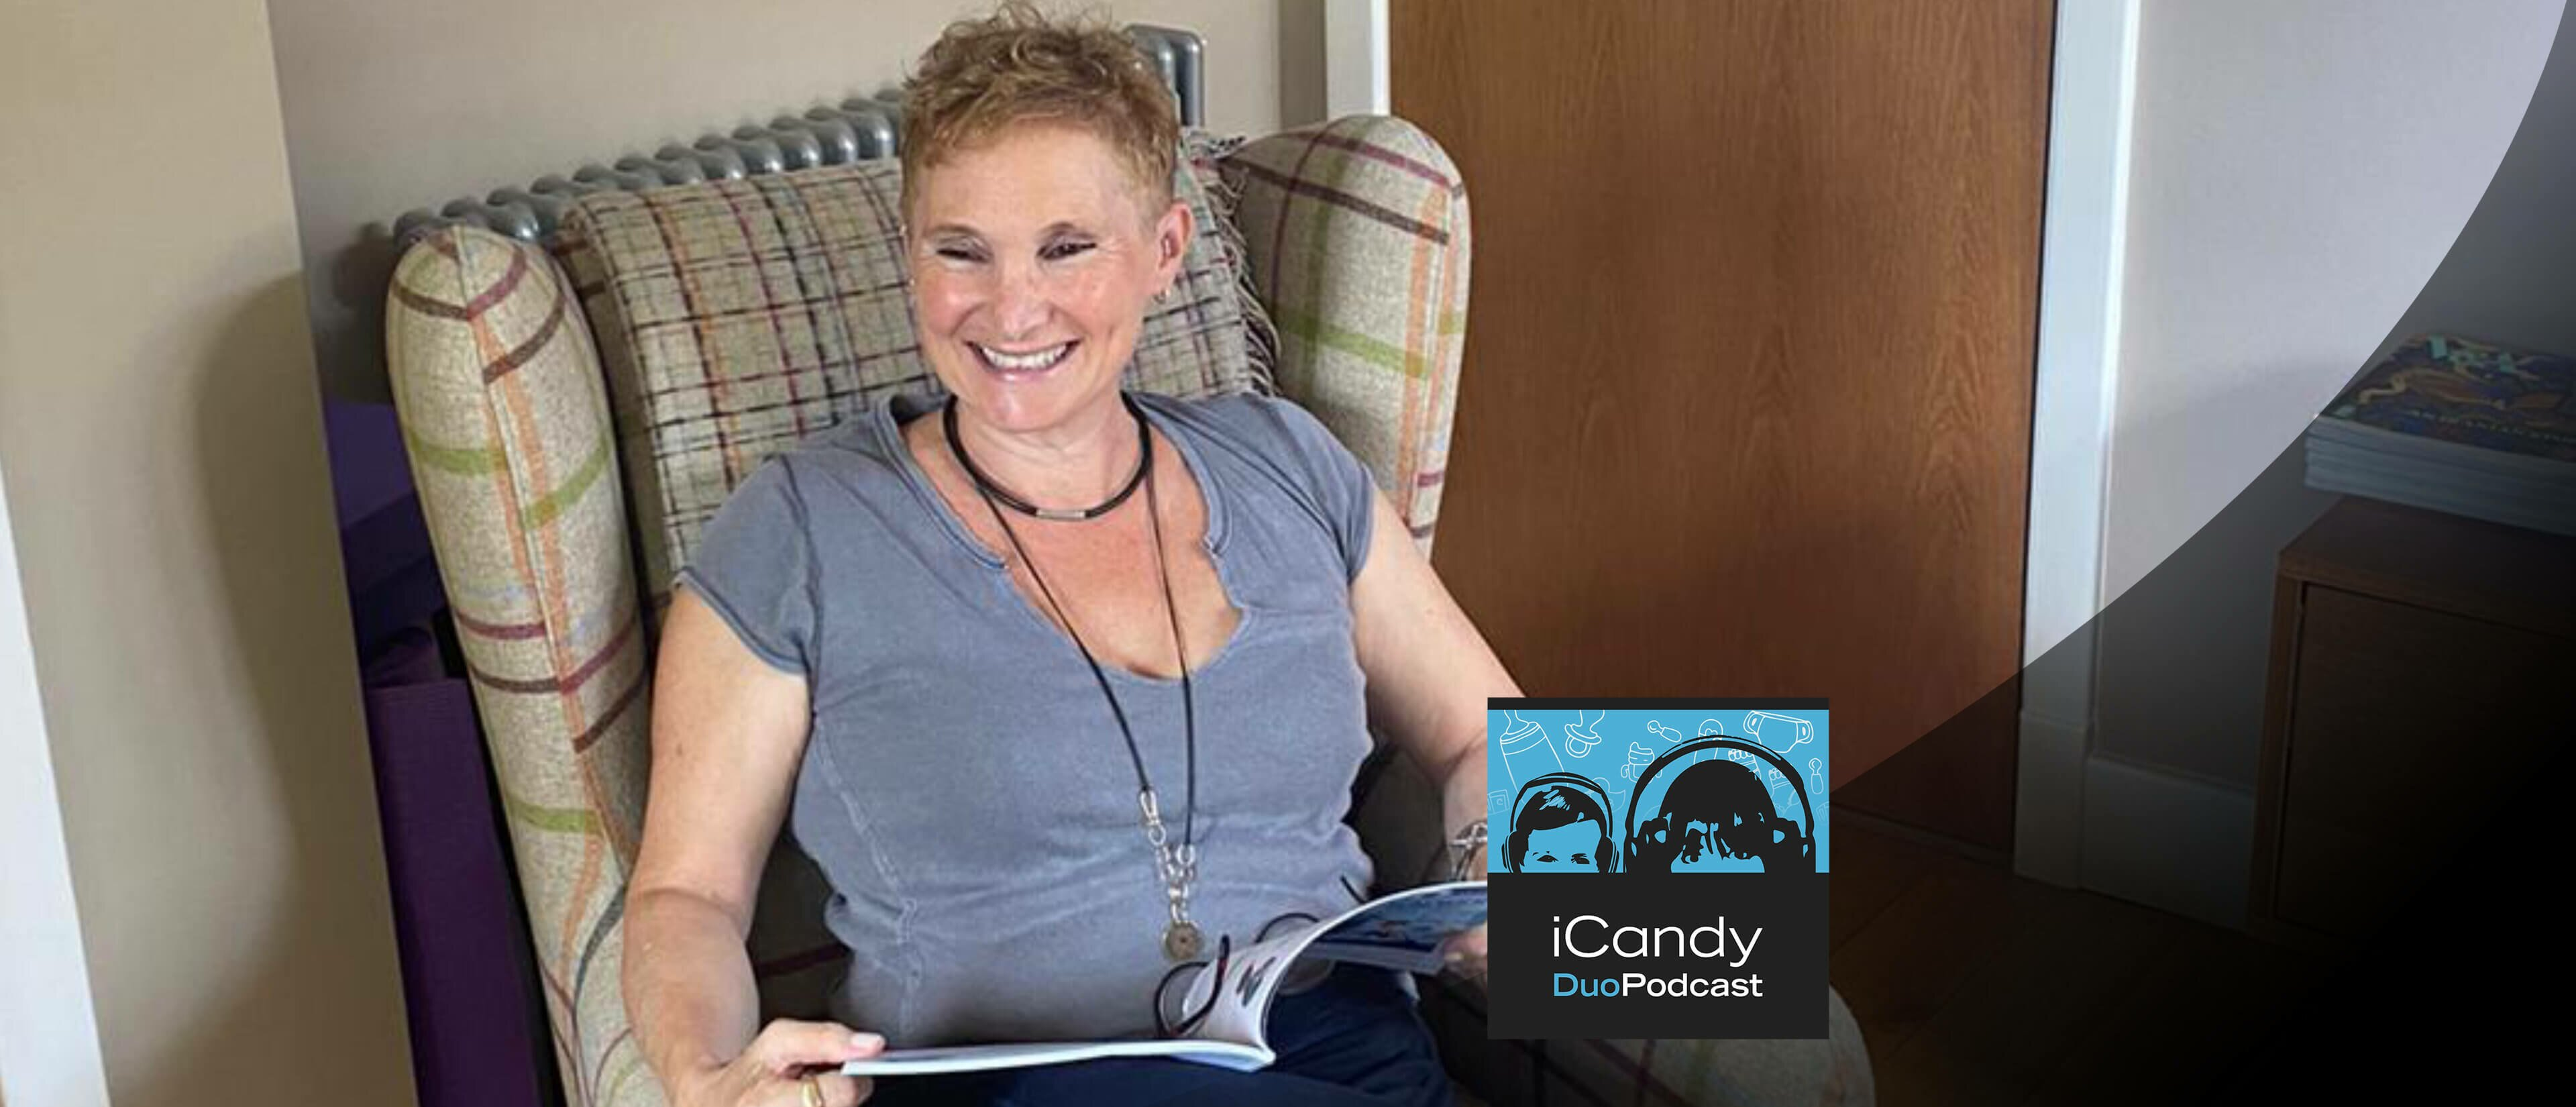 iCandy Duo Podcast - Tracey Green